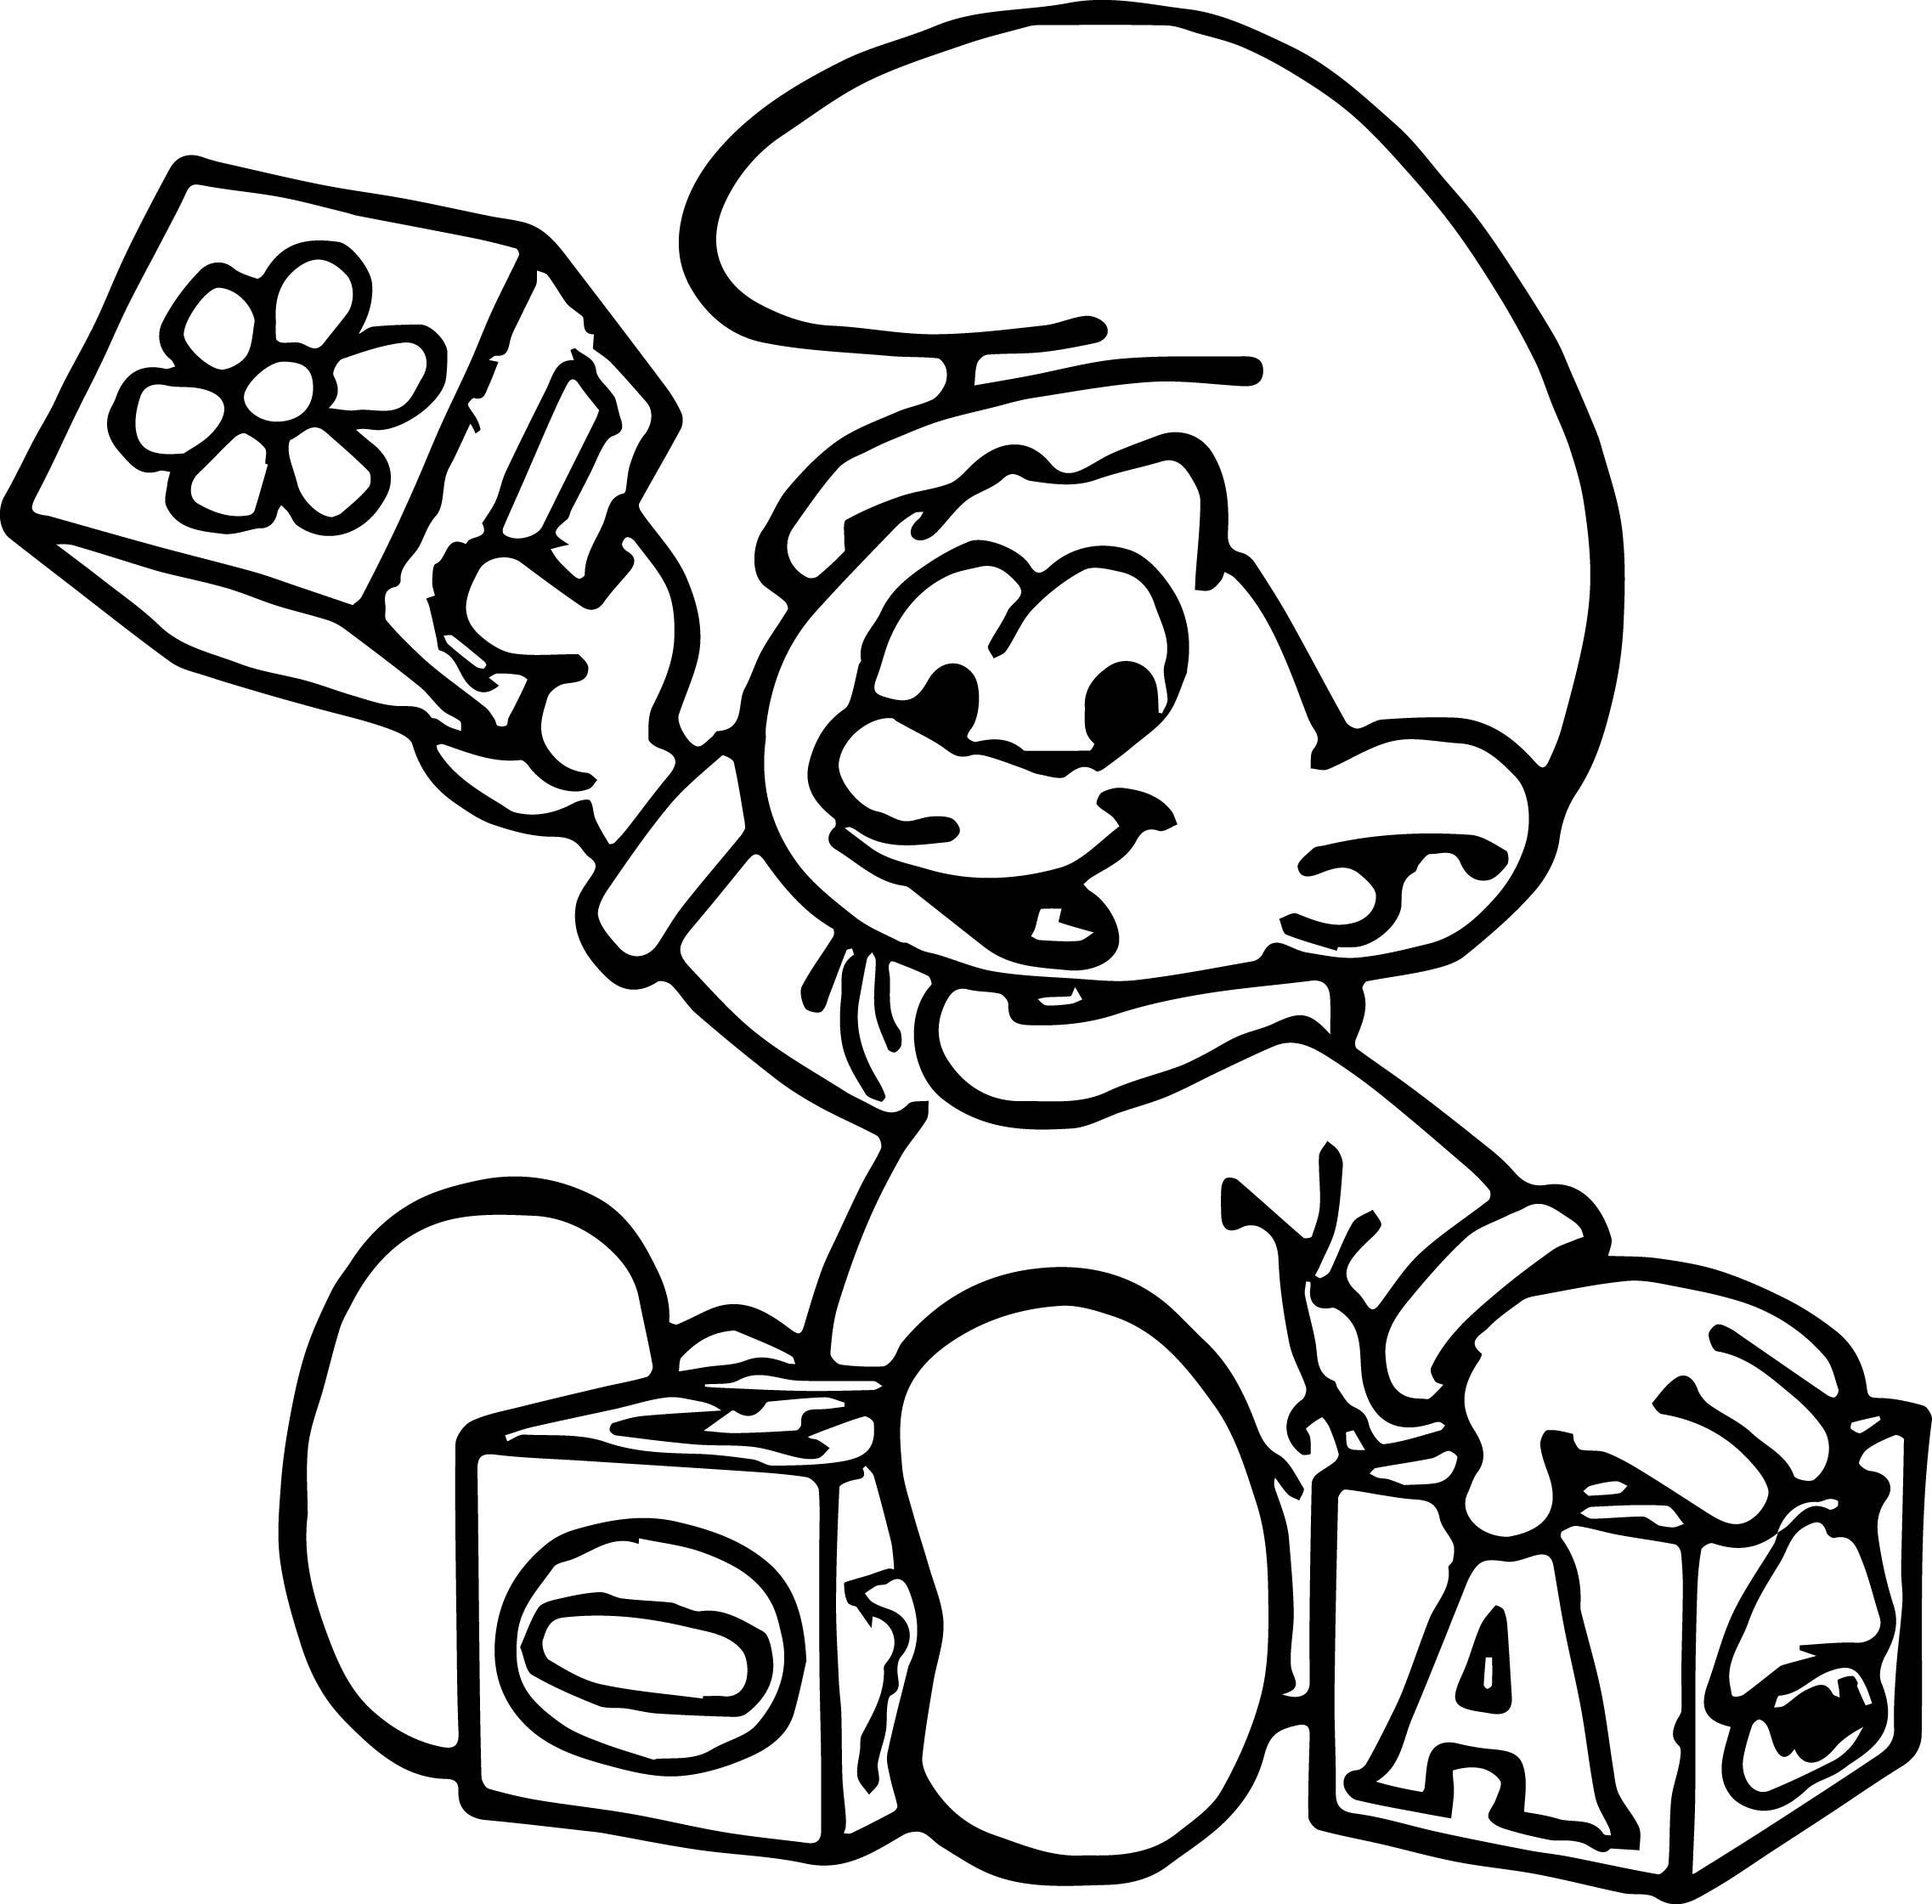 Cool Baby Smurf Playing Toy Coloring Page With Images Coloring